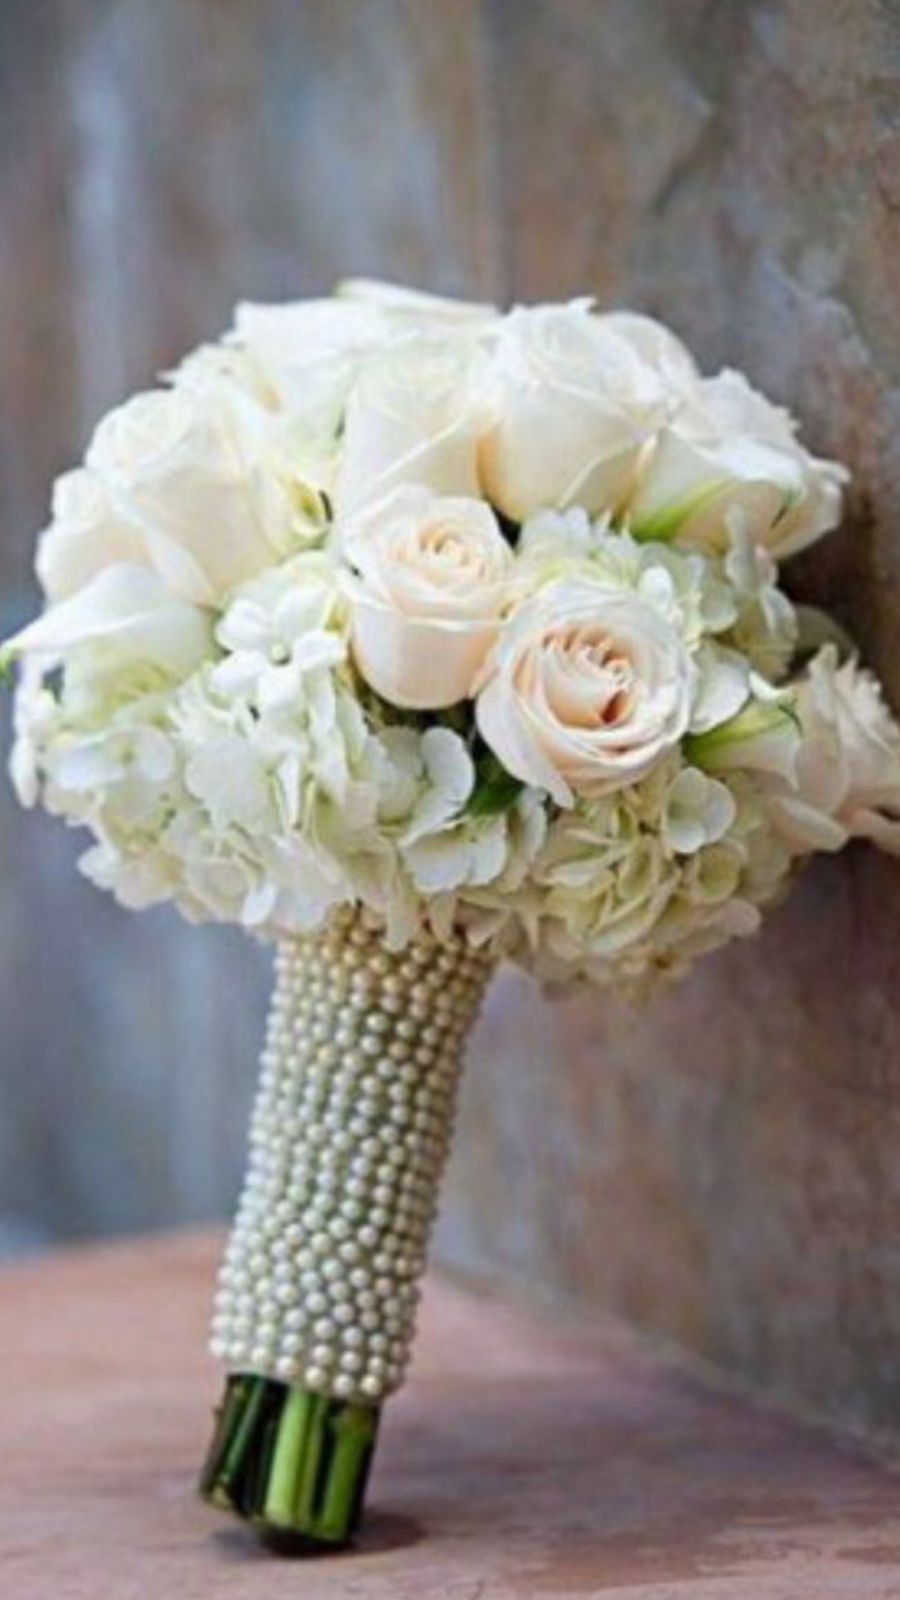 bouquet di rose bianche addobbato con perline